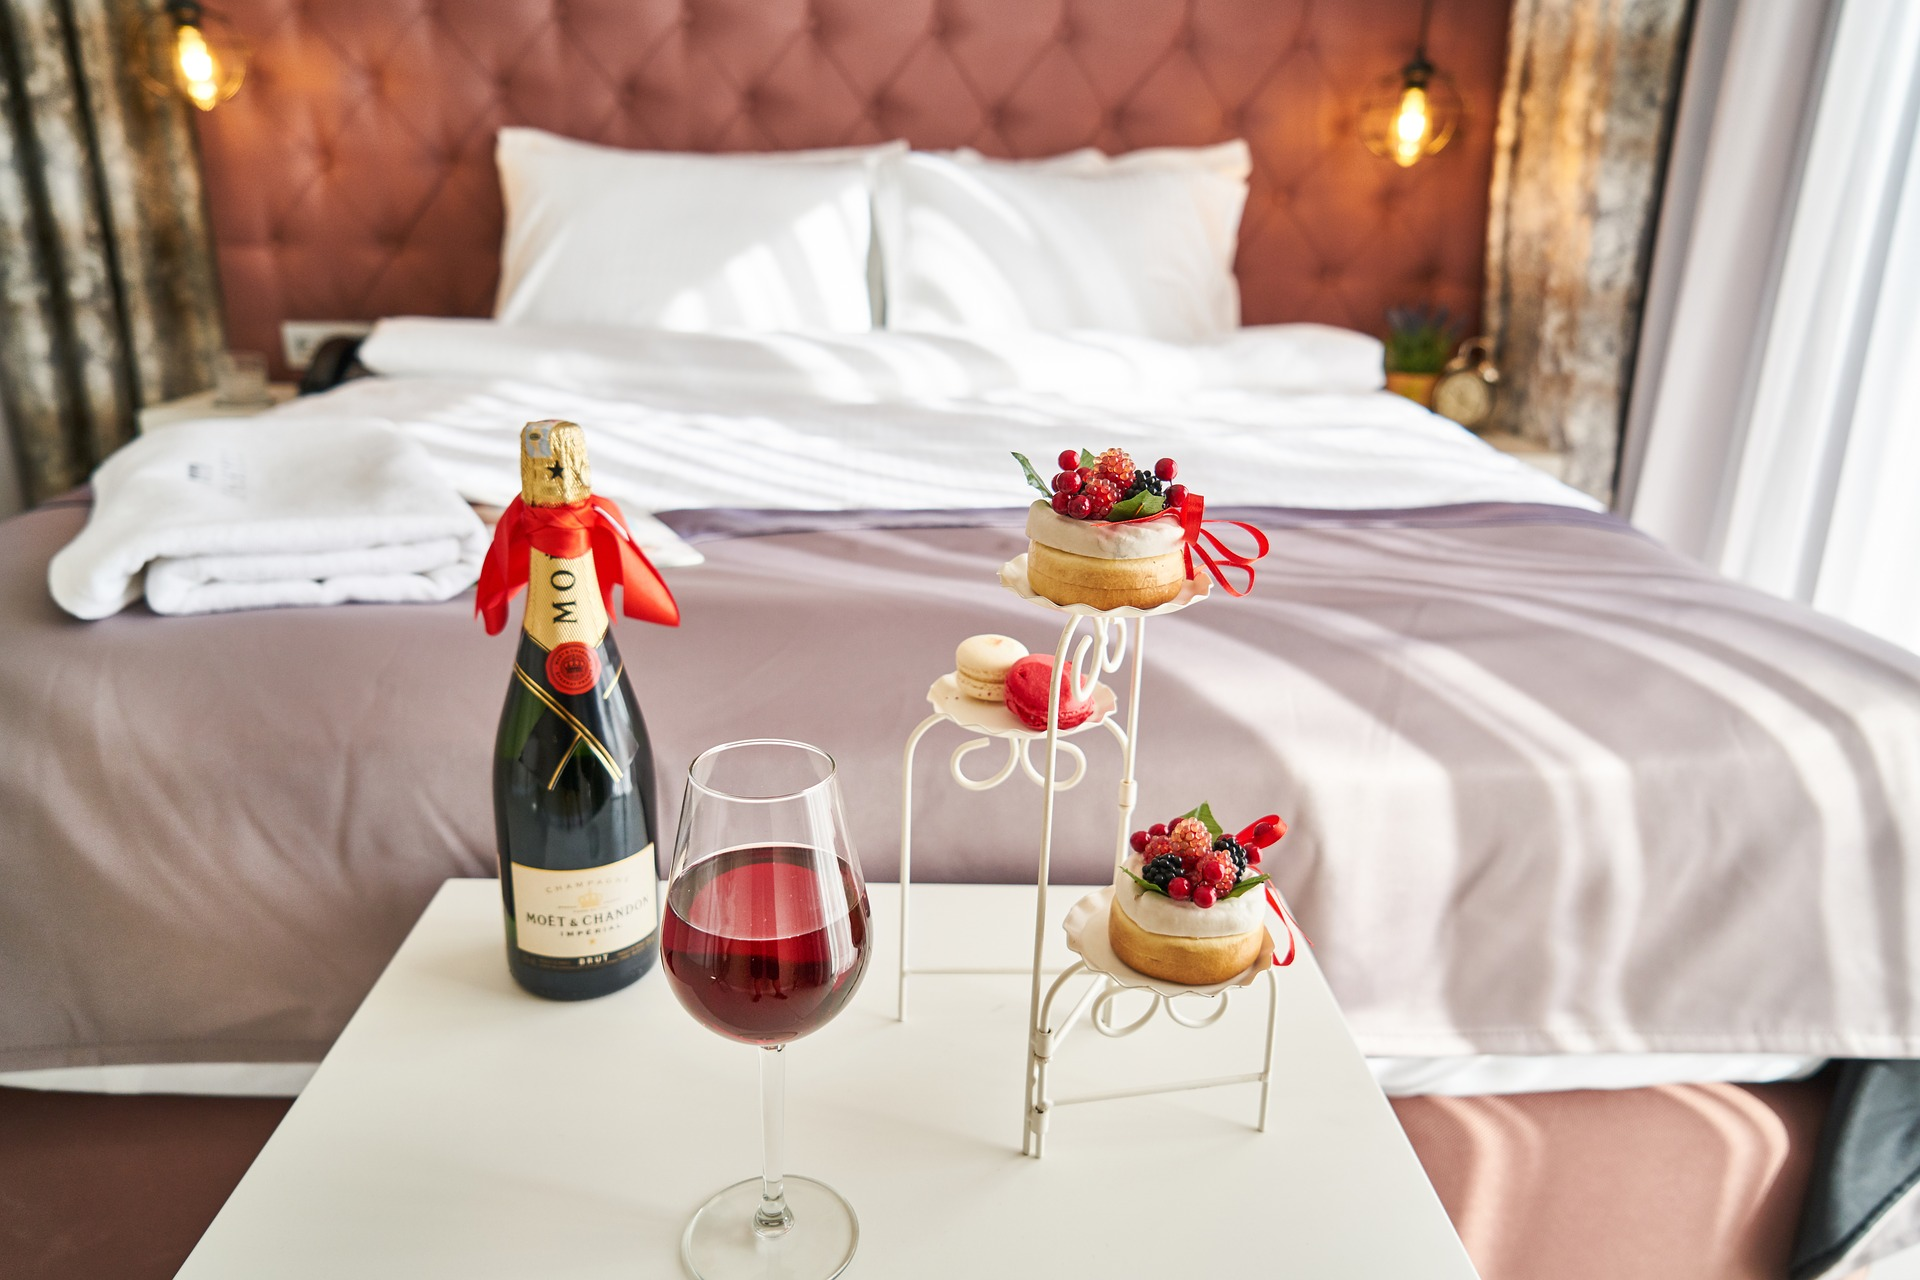 romantic hotel packages - wine and pastry in hotel room